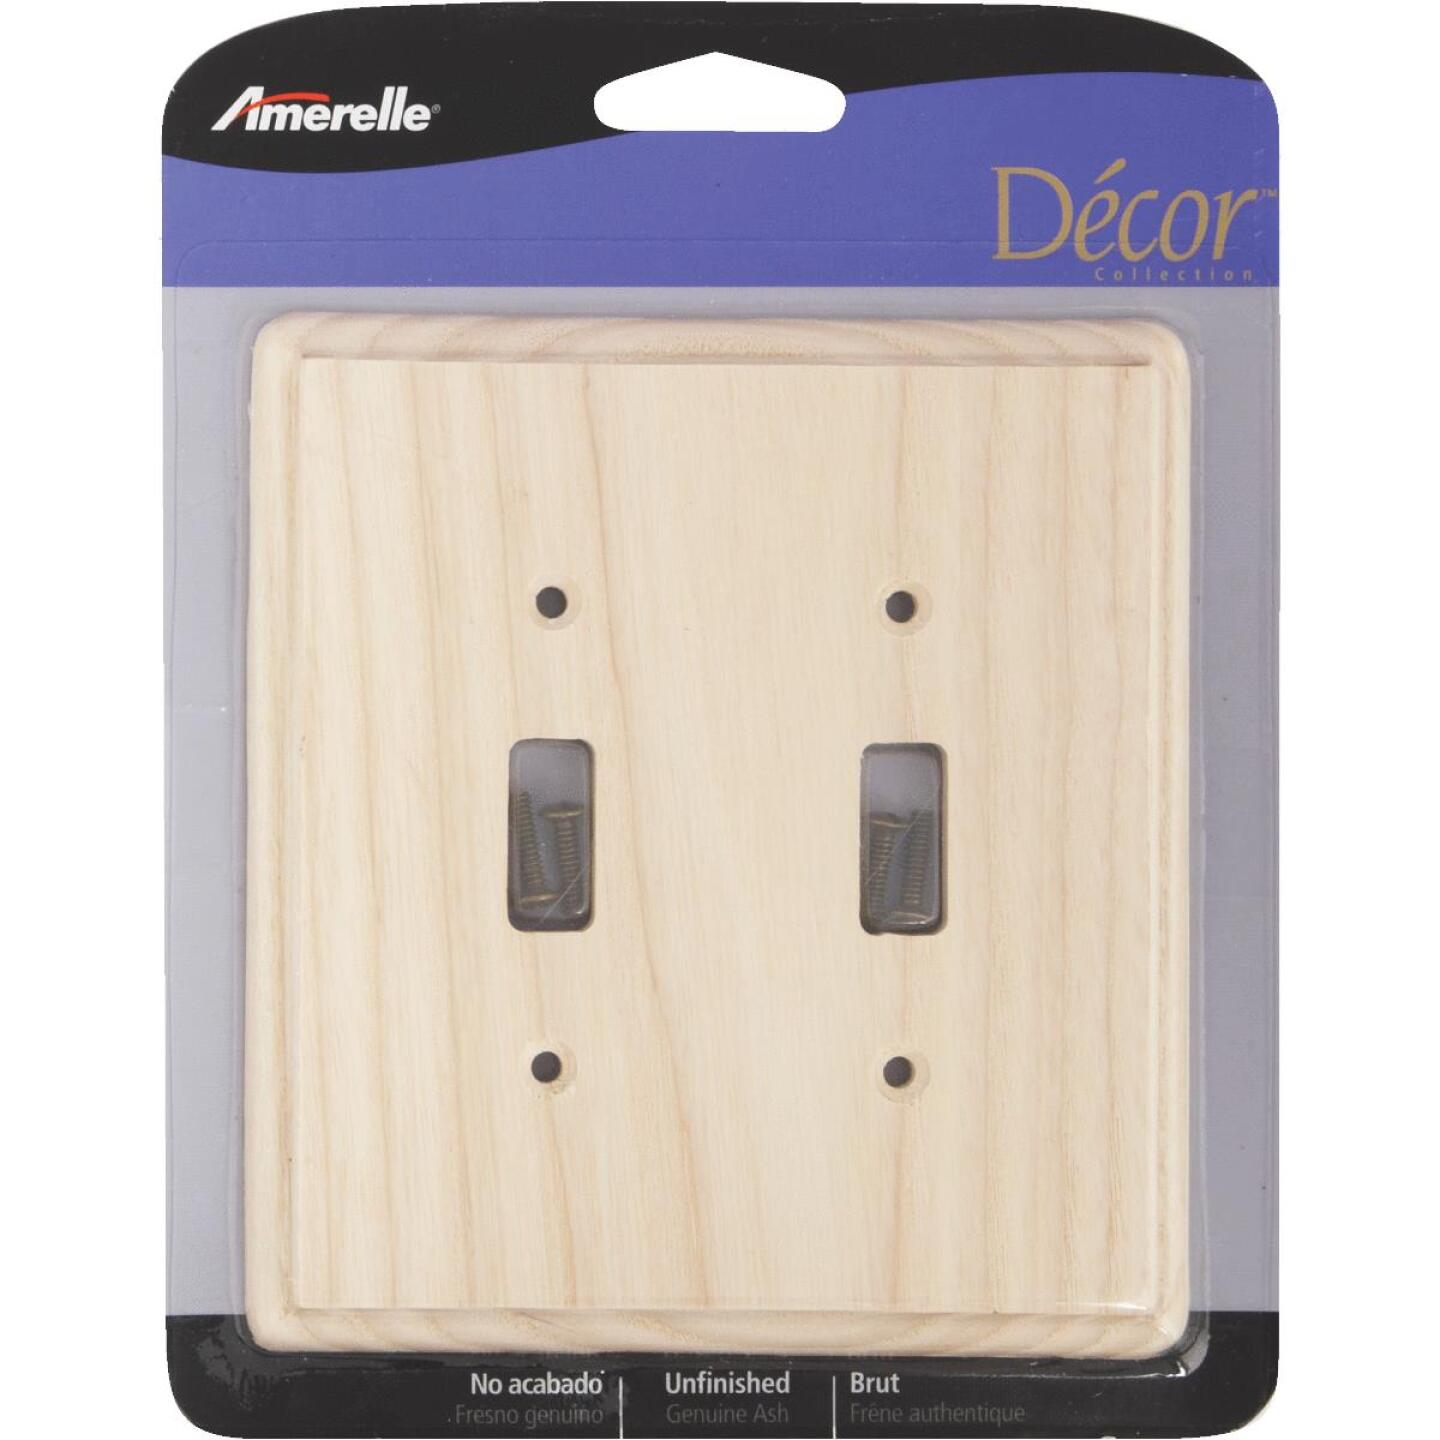 Amerelle 2-Gang Solid Ash Toggle Switch Wall Plate, Unfinished Ash Image 2